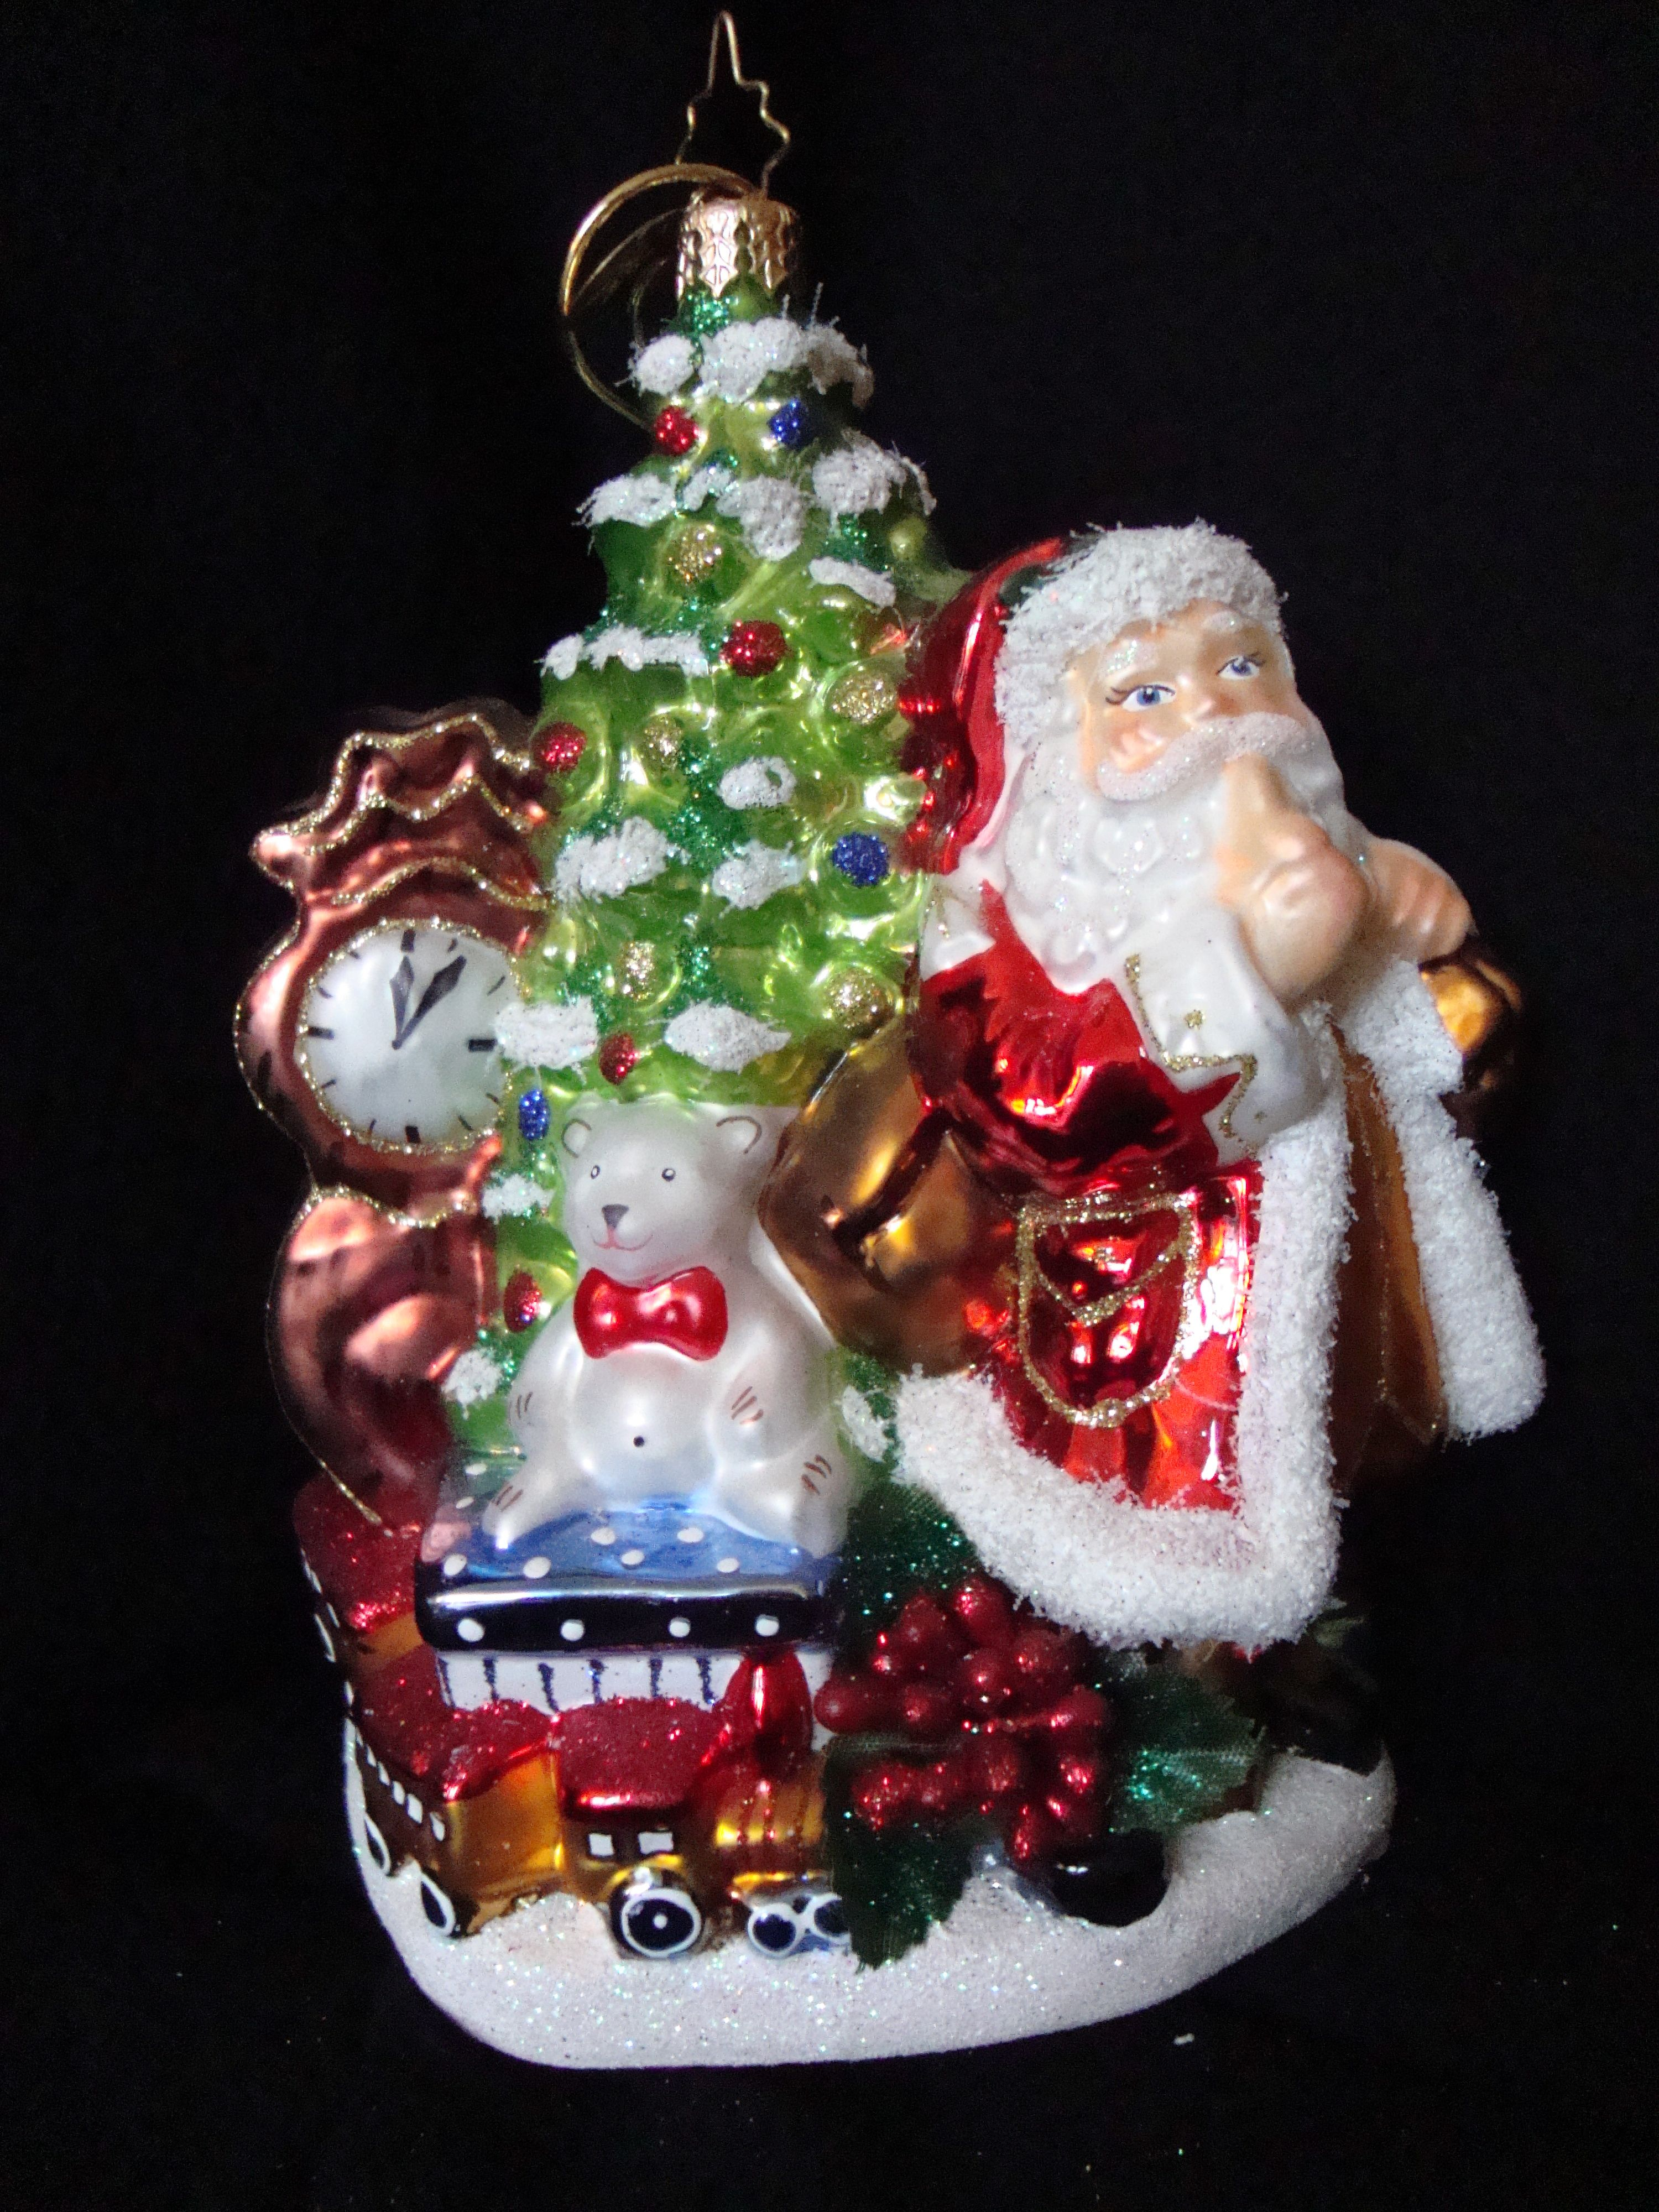 I Love And Collect Christopher Radko Ornaments Traditional Christmas Decorations Vintage Christmas Ornaments Glass Christmas Ornaments